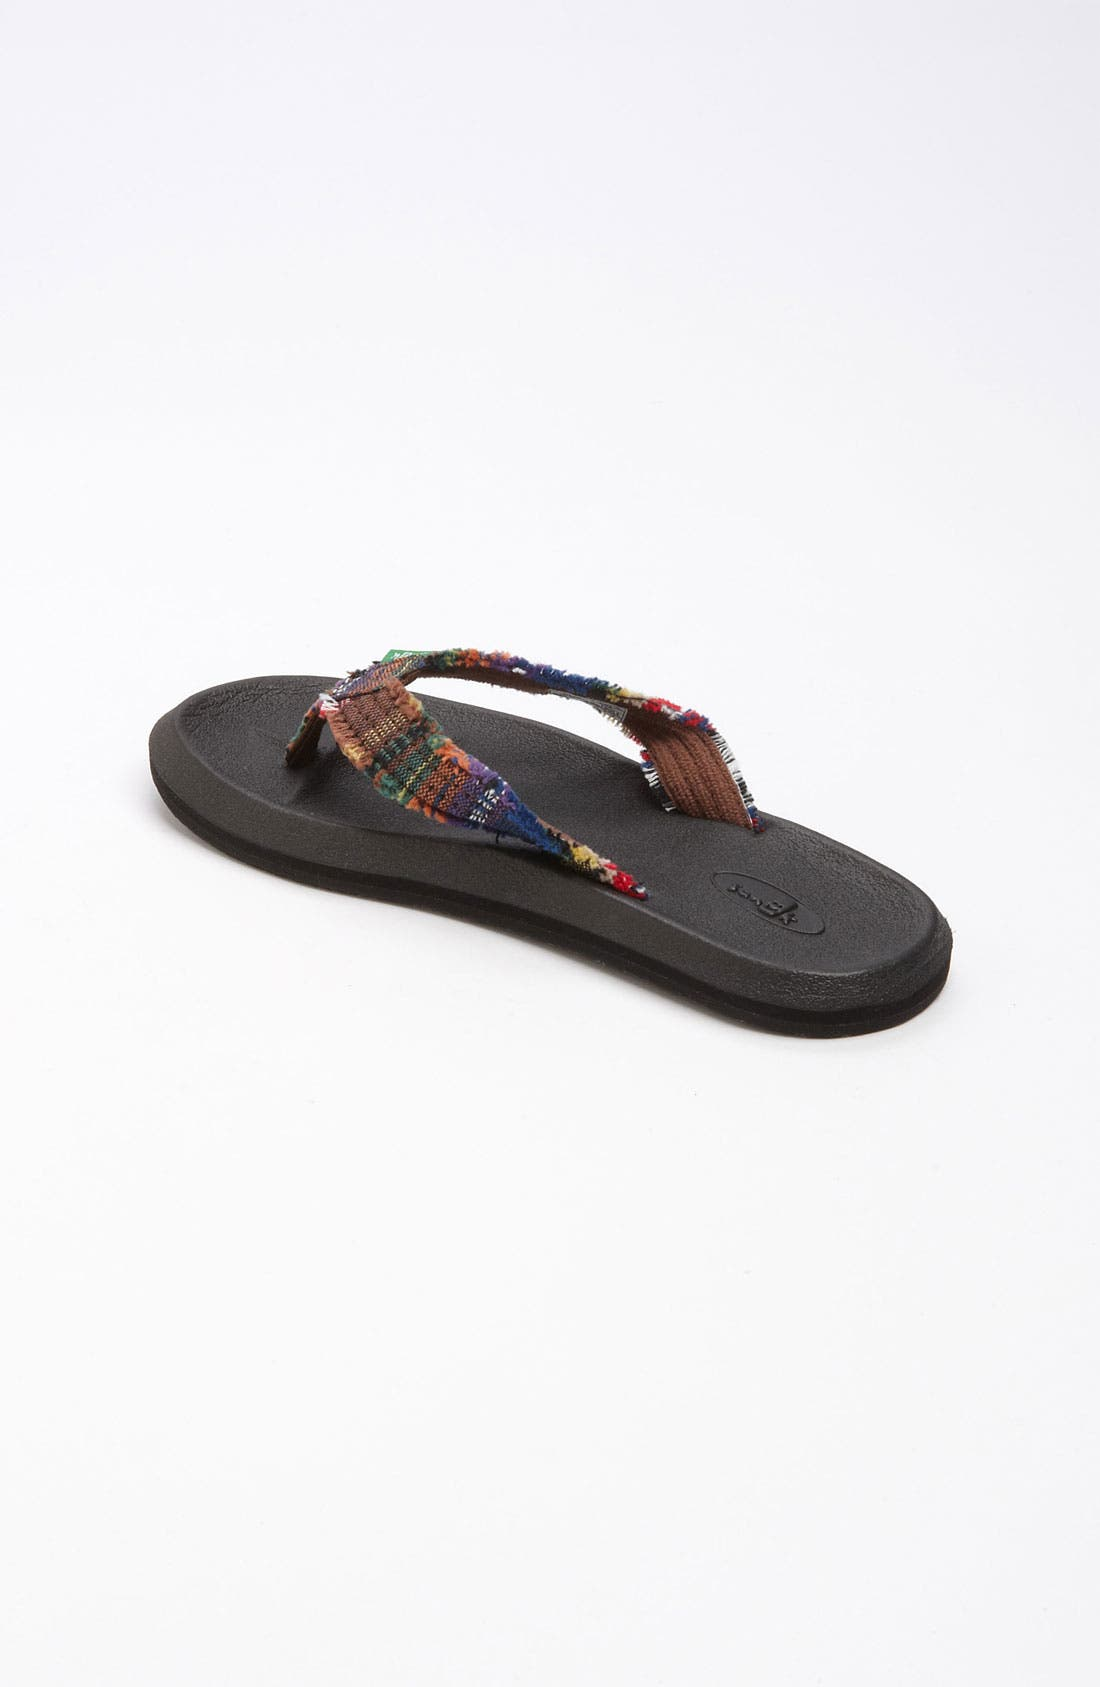 Alternate Image 2  - Sanuk 'Who's Afraid' Flip Flop (Toddler, Little Kid & Big Kid)